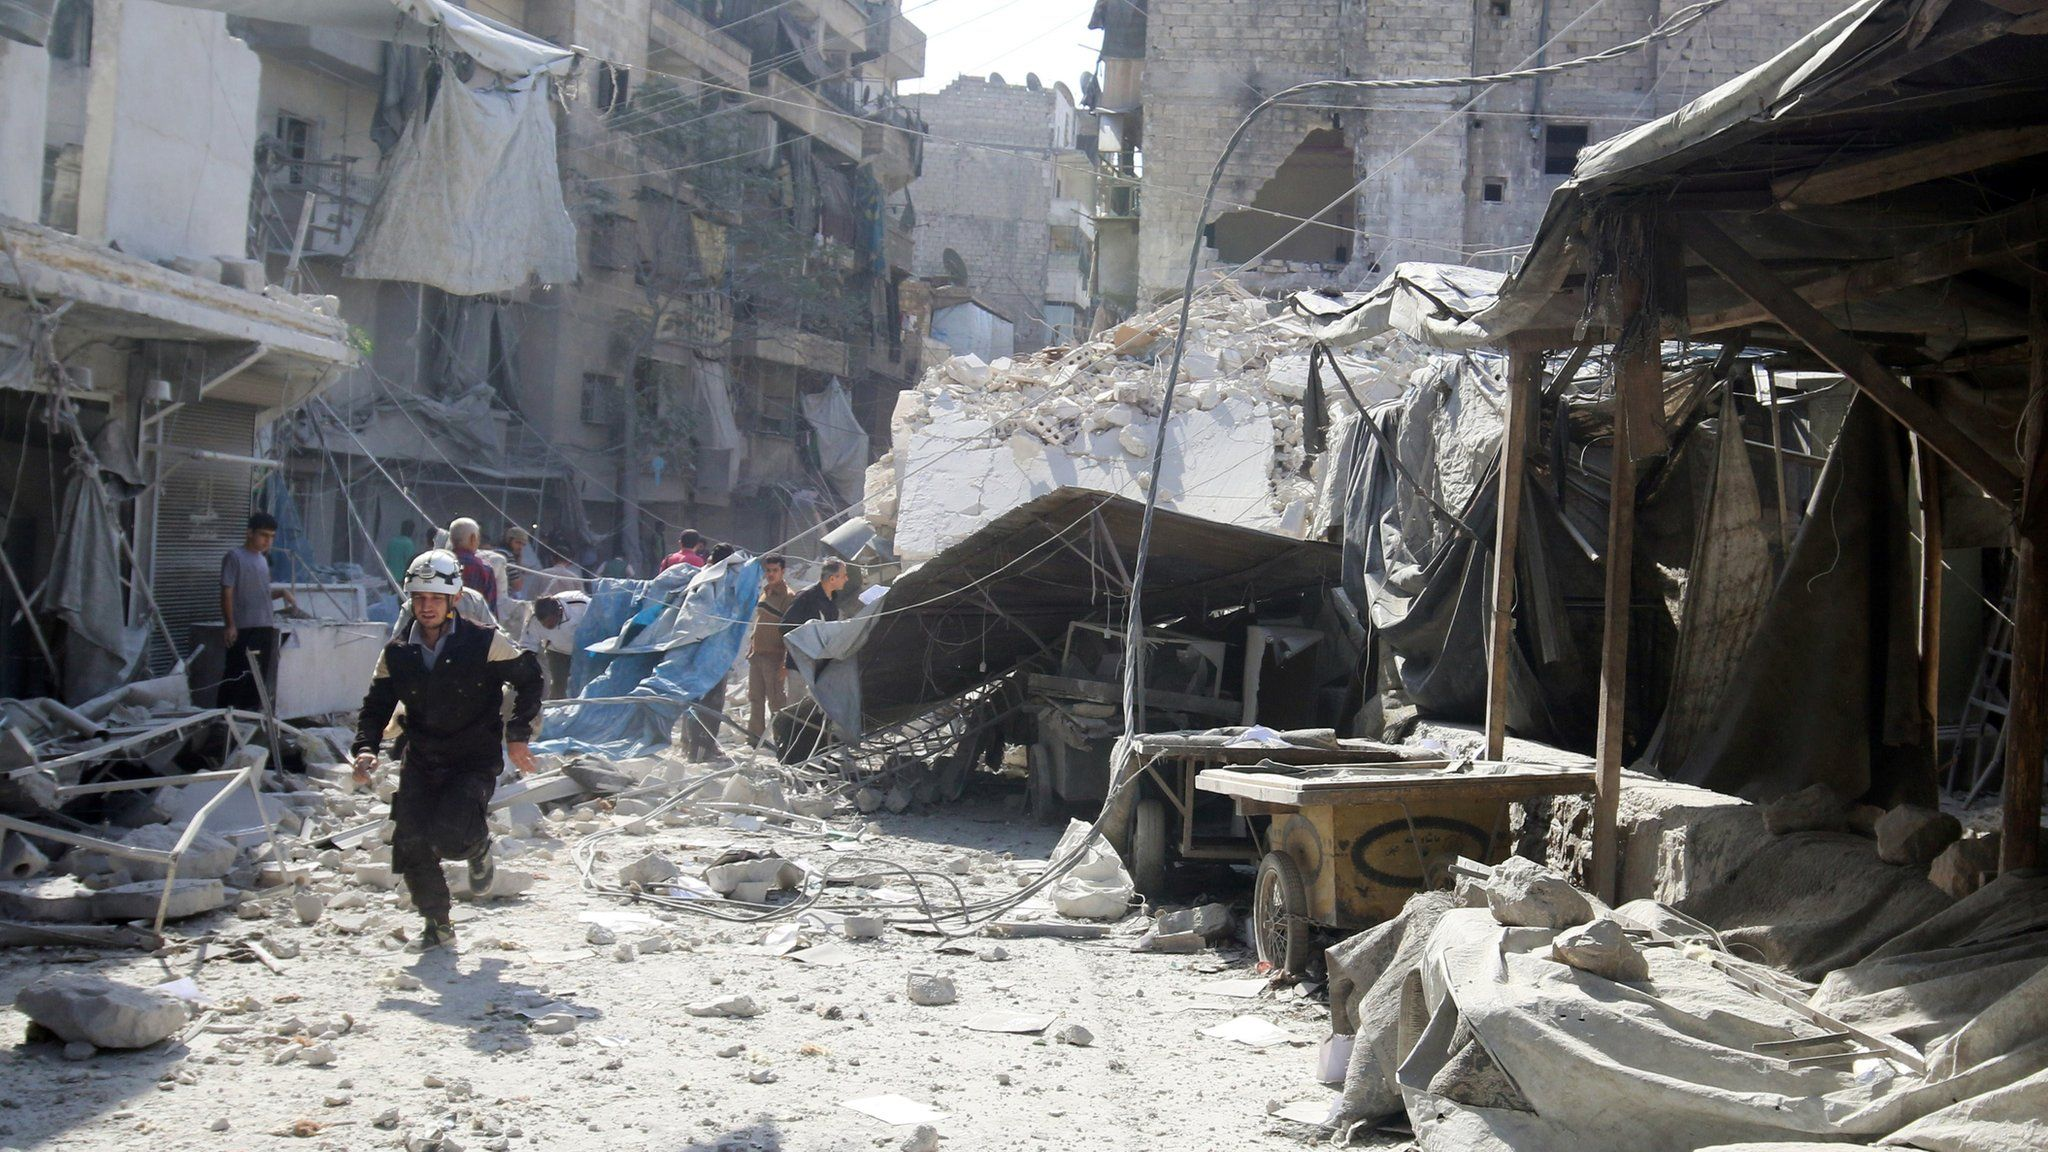 A rescue worker runs at a market hit by air strikes in Aleppo's rebel-held Fardous district, Syria (12 October 2016)